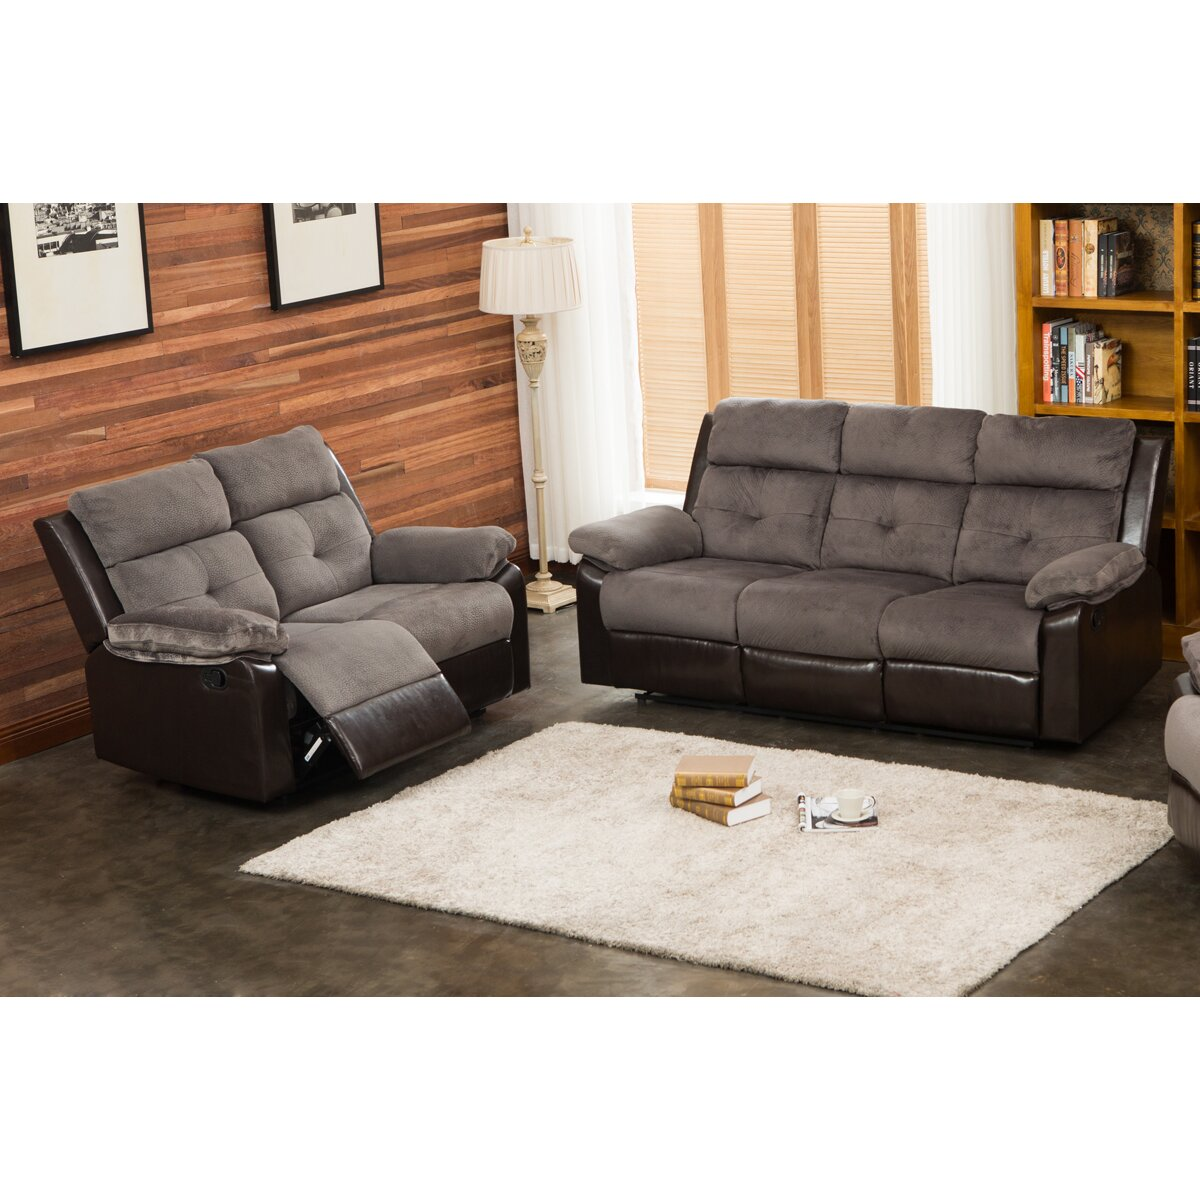 Living in style sherry 2 piece living room set wayfair for 2 piece living room set